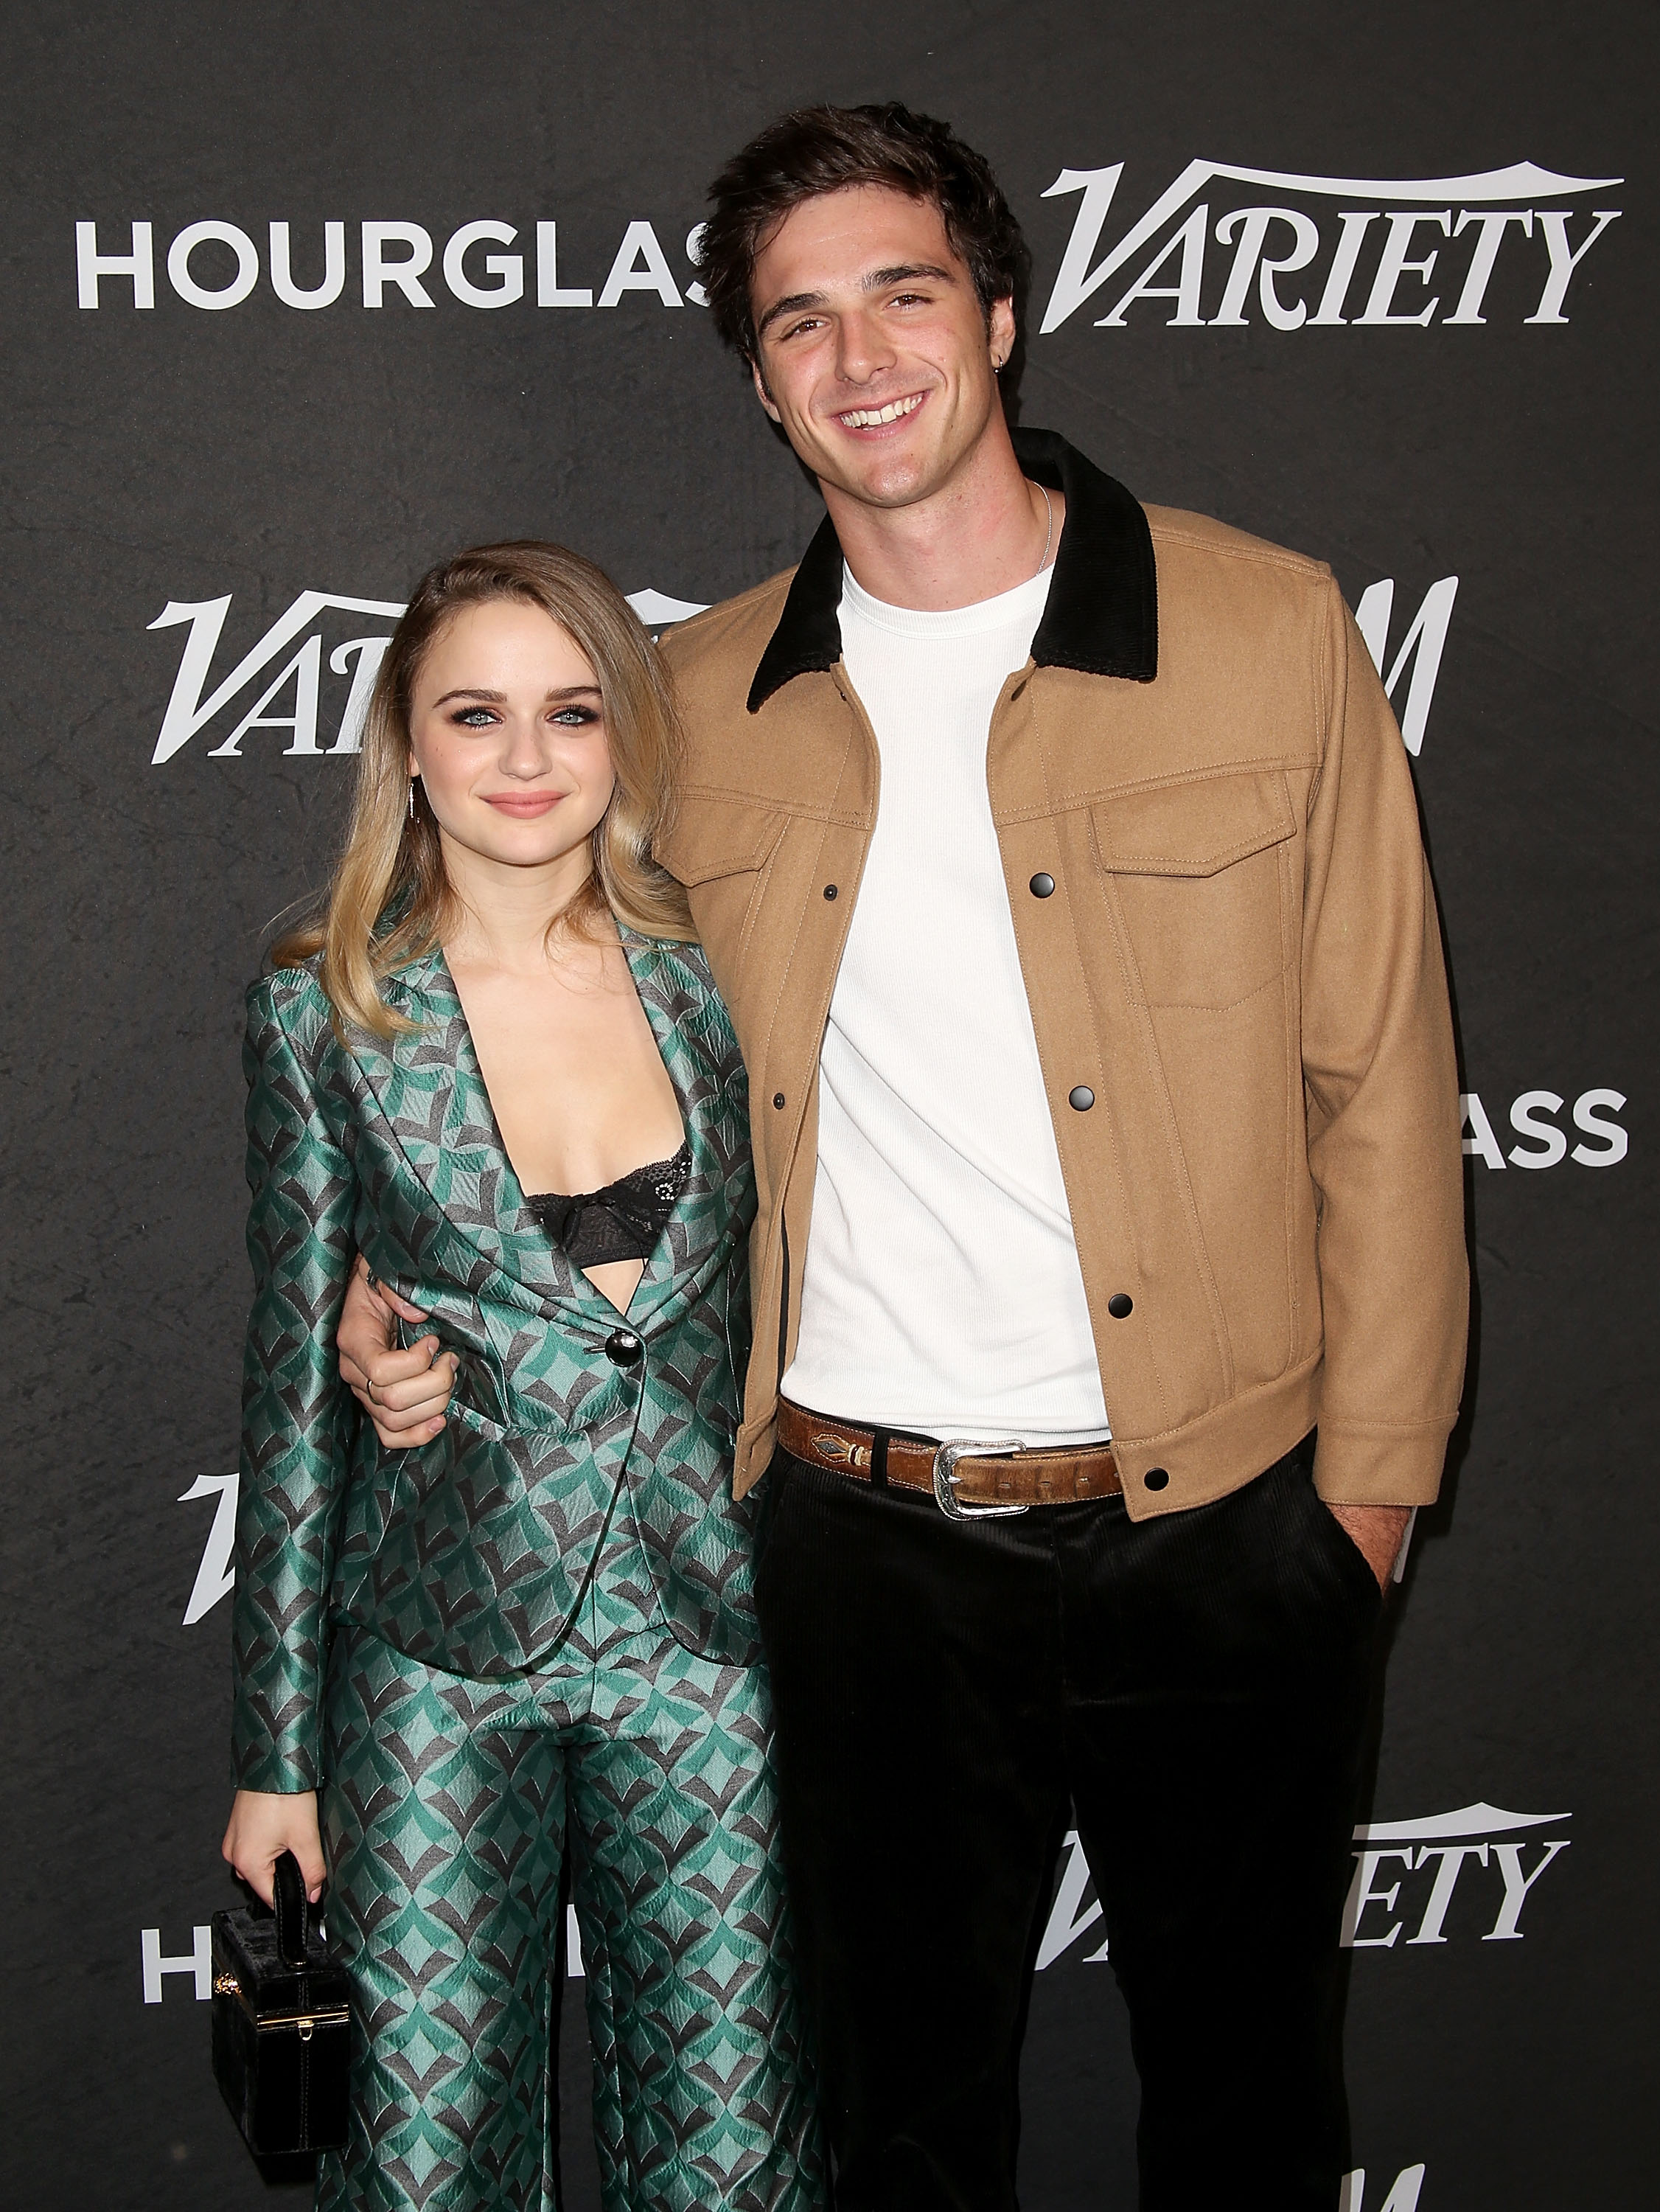 Joey King and Jacob Elordi attend Variety's Power of Young Hollywood event at the Sunset Tower Hotel on August 28, 2018 in West Hollywood, California.